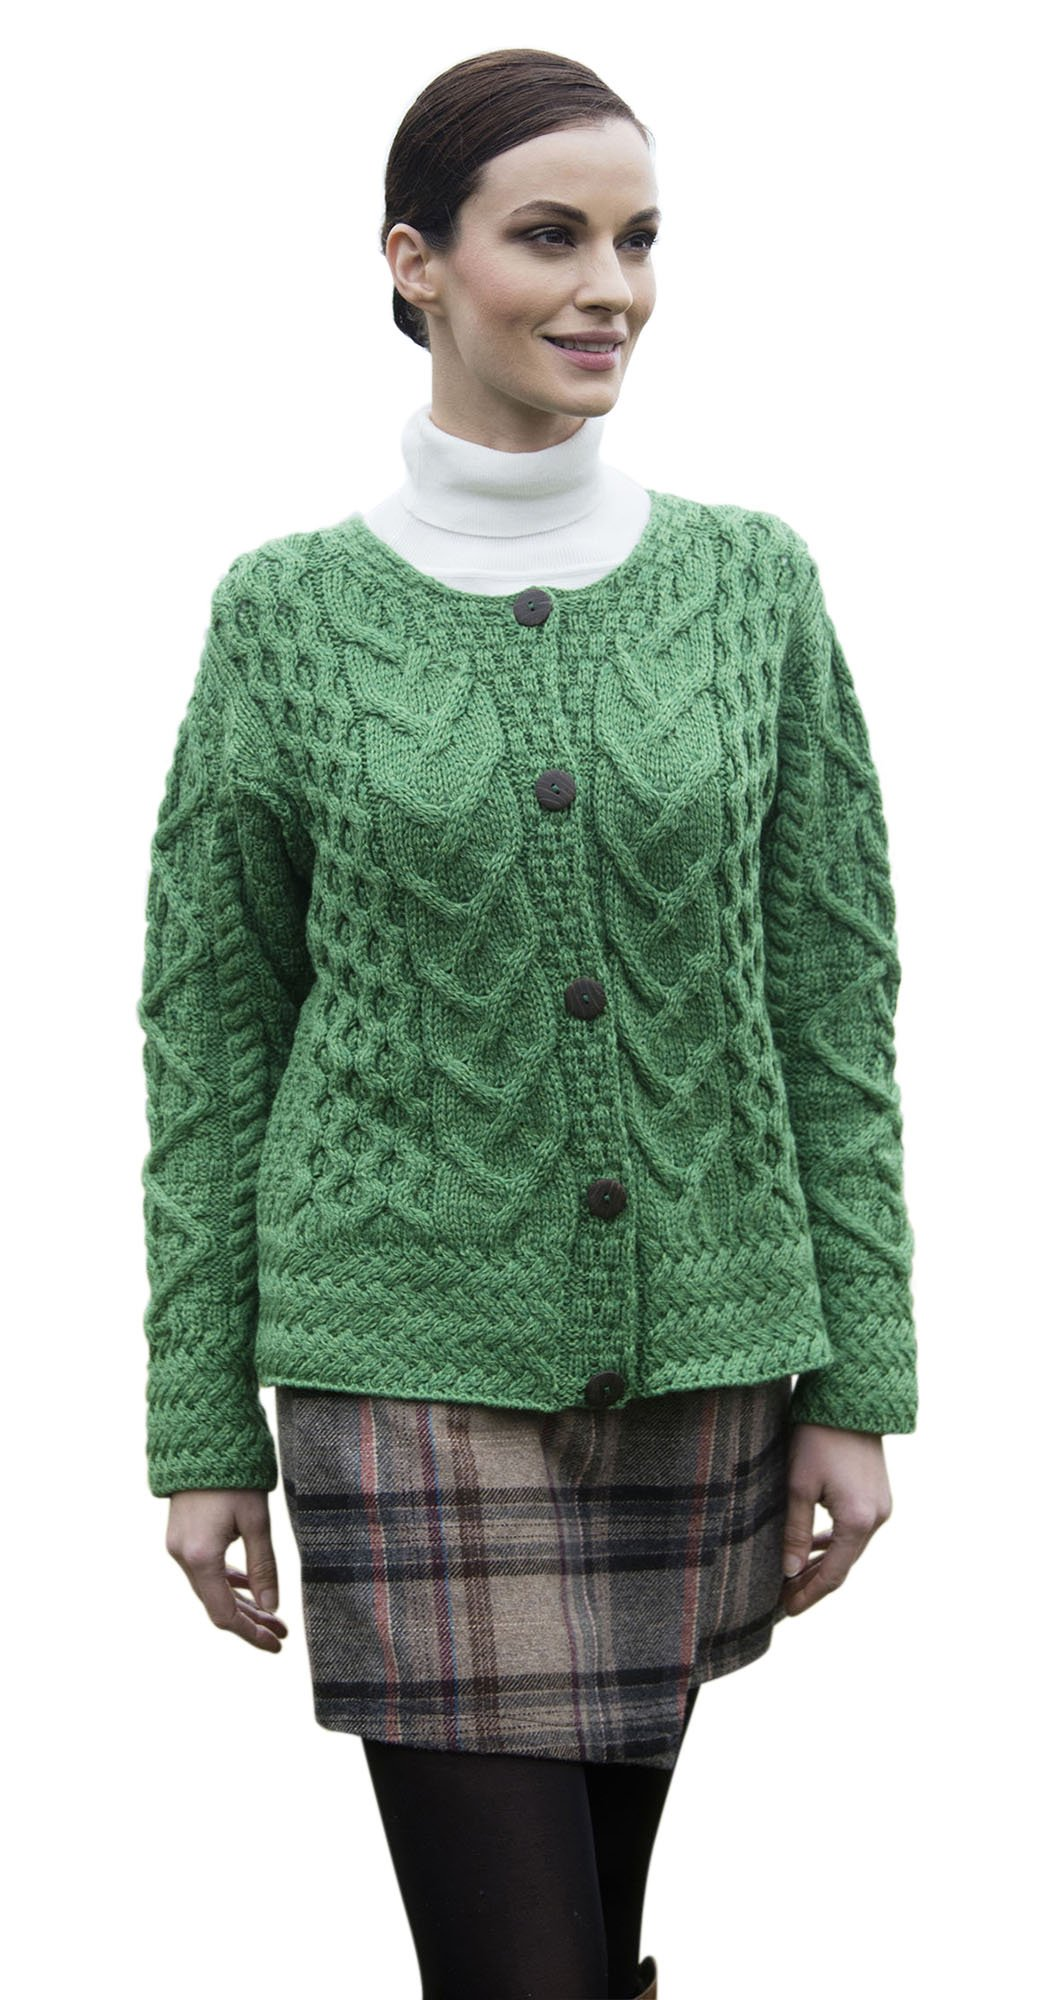 Carraig Donn Ladies Large Irish Cable Wool Cardigan (Medium, Kiwi Green)